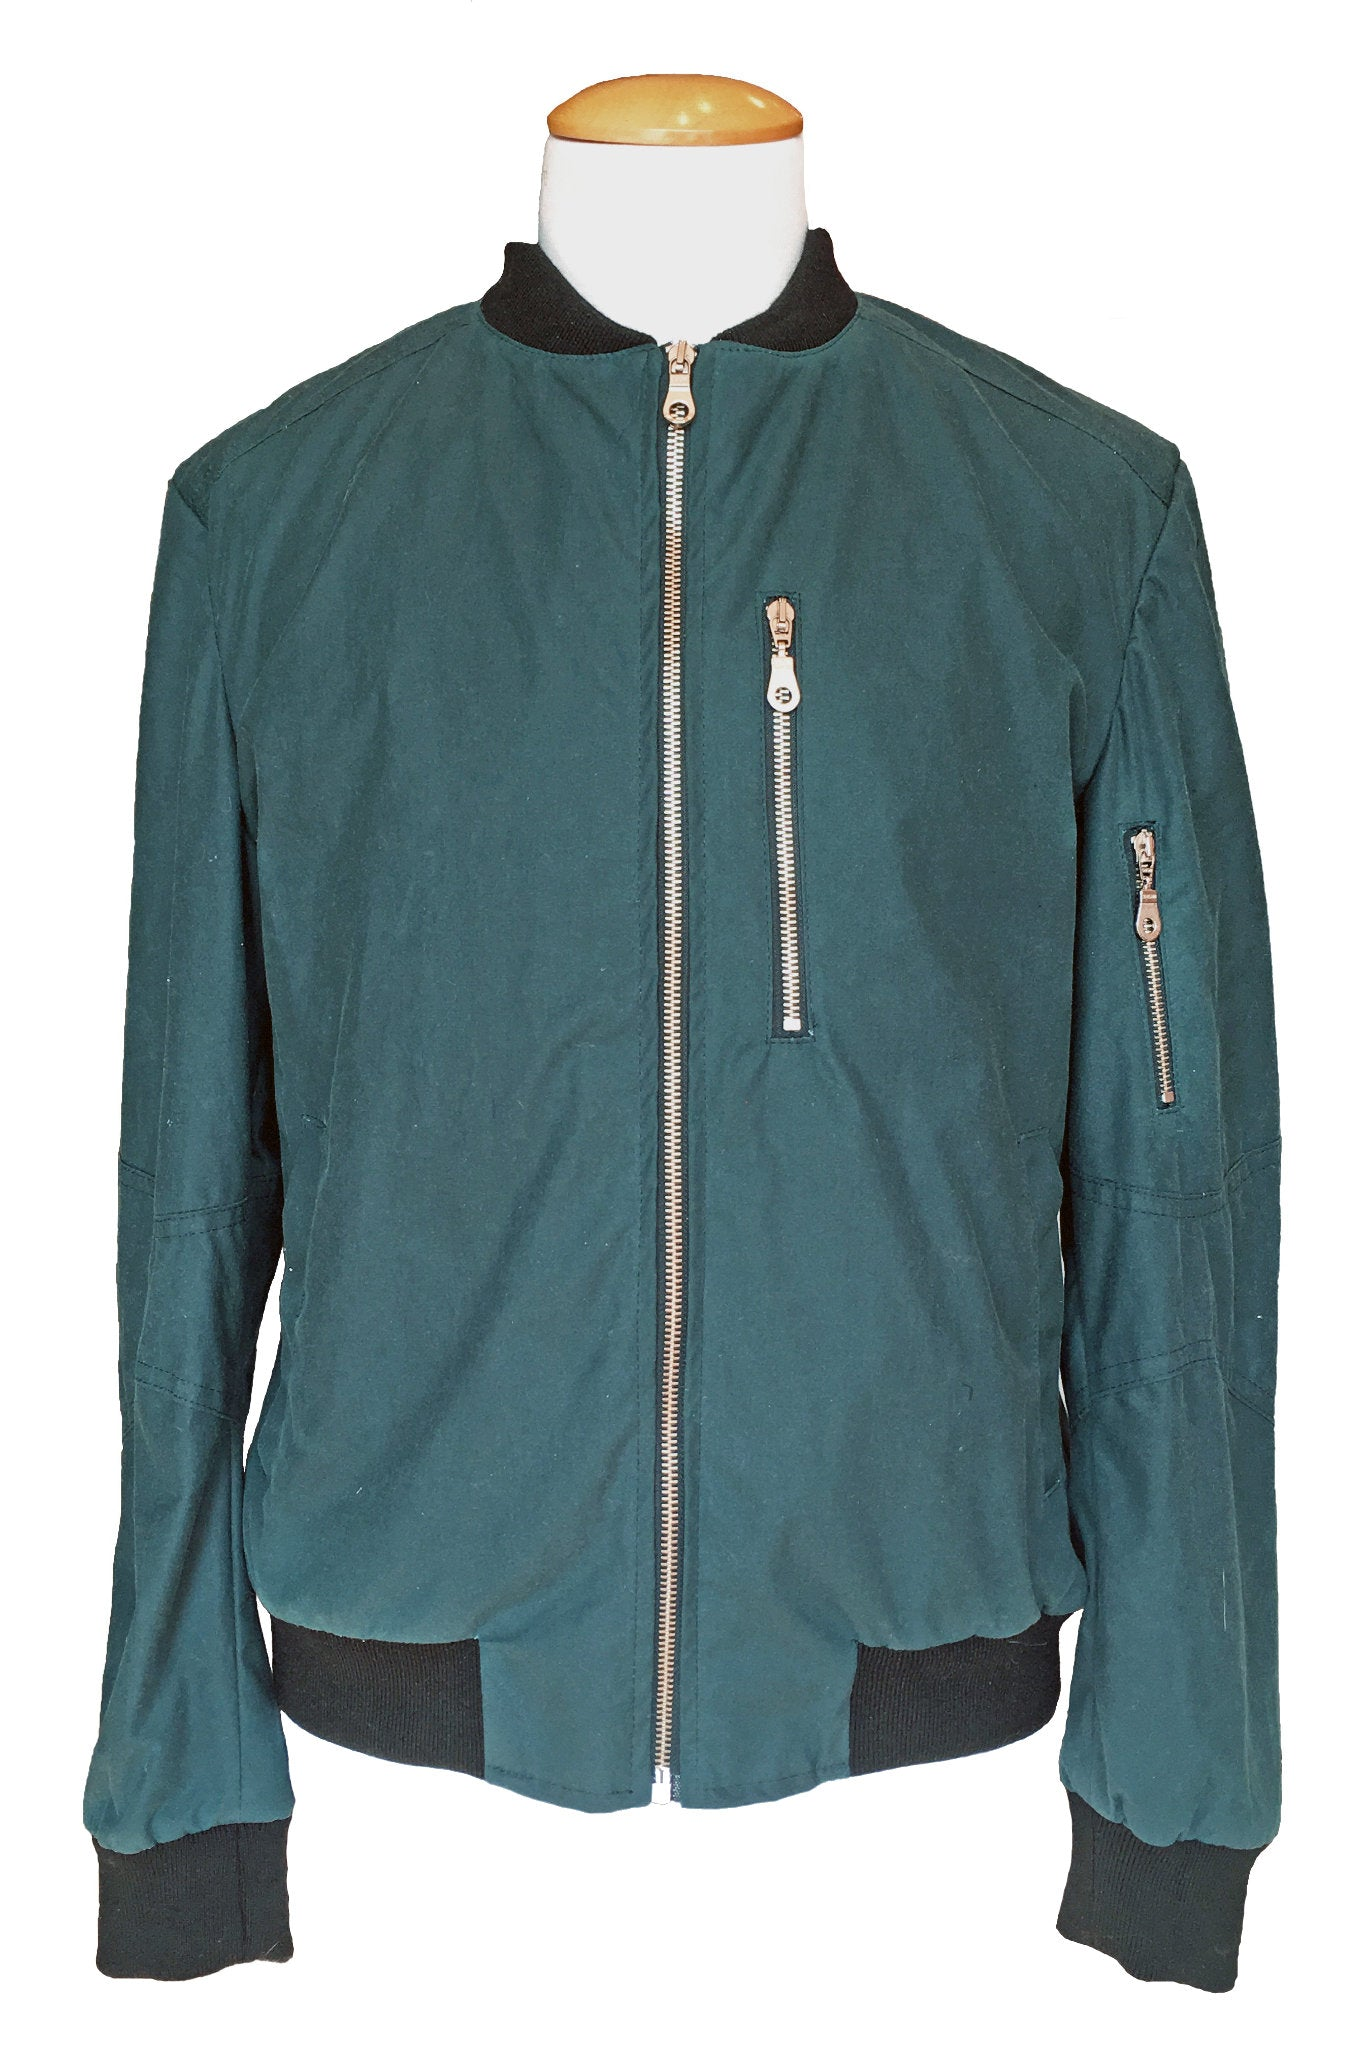 Upside Cyclestyle Men's Waxed Cotton Bomber Jacket in Teal